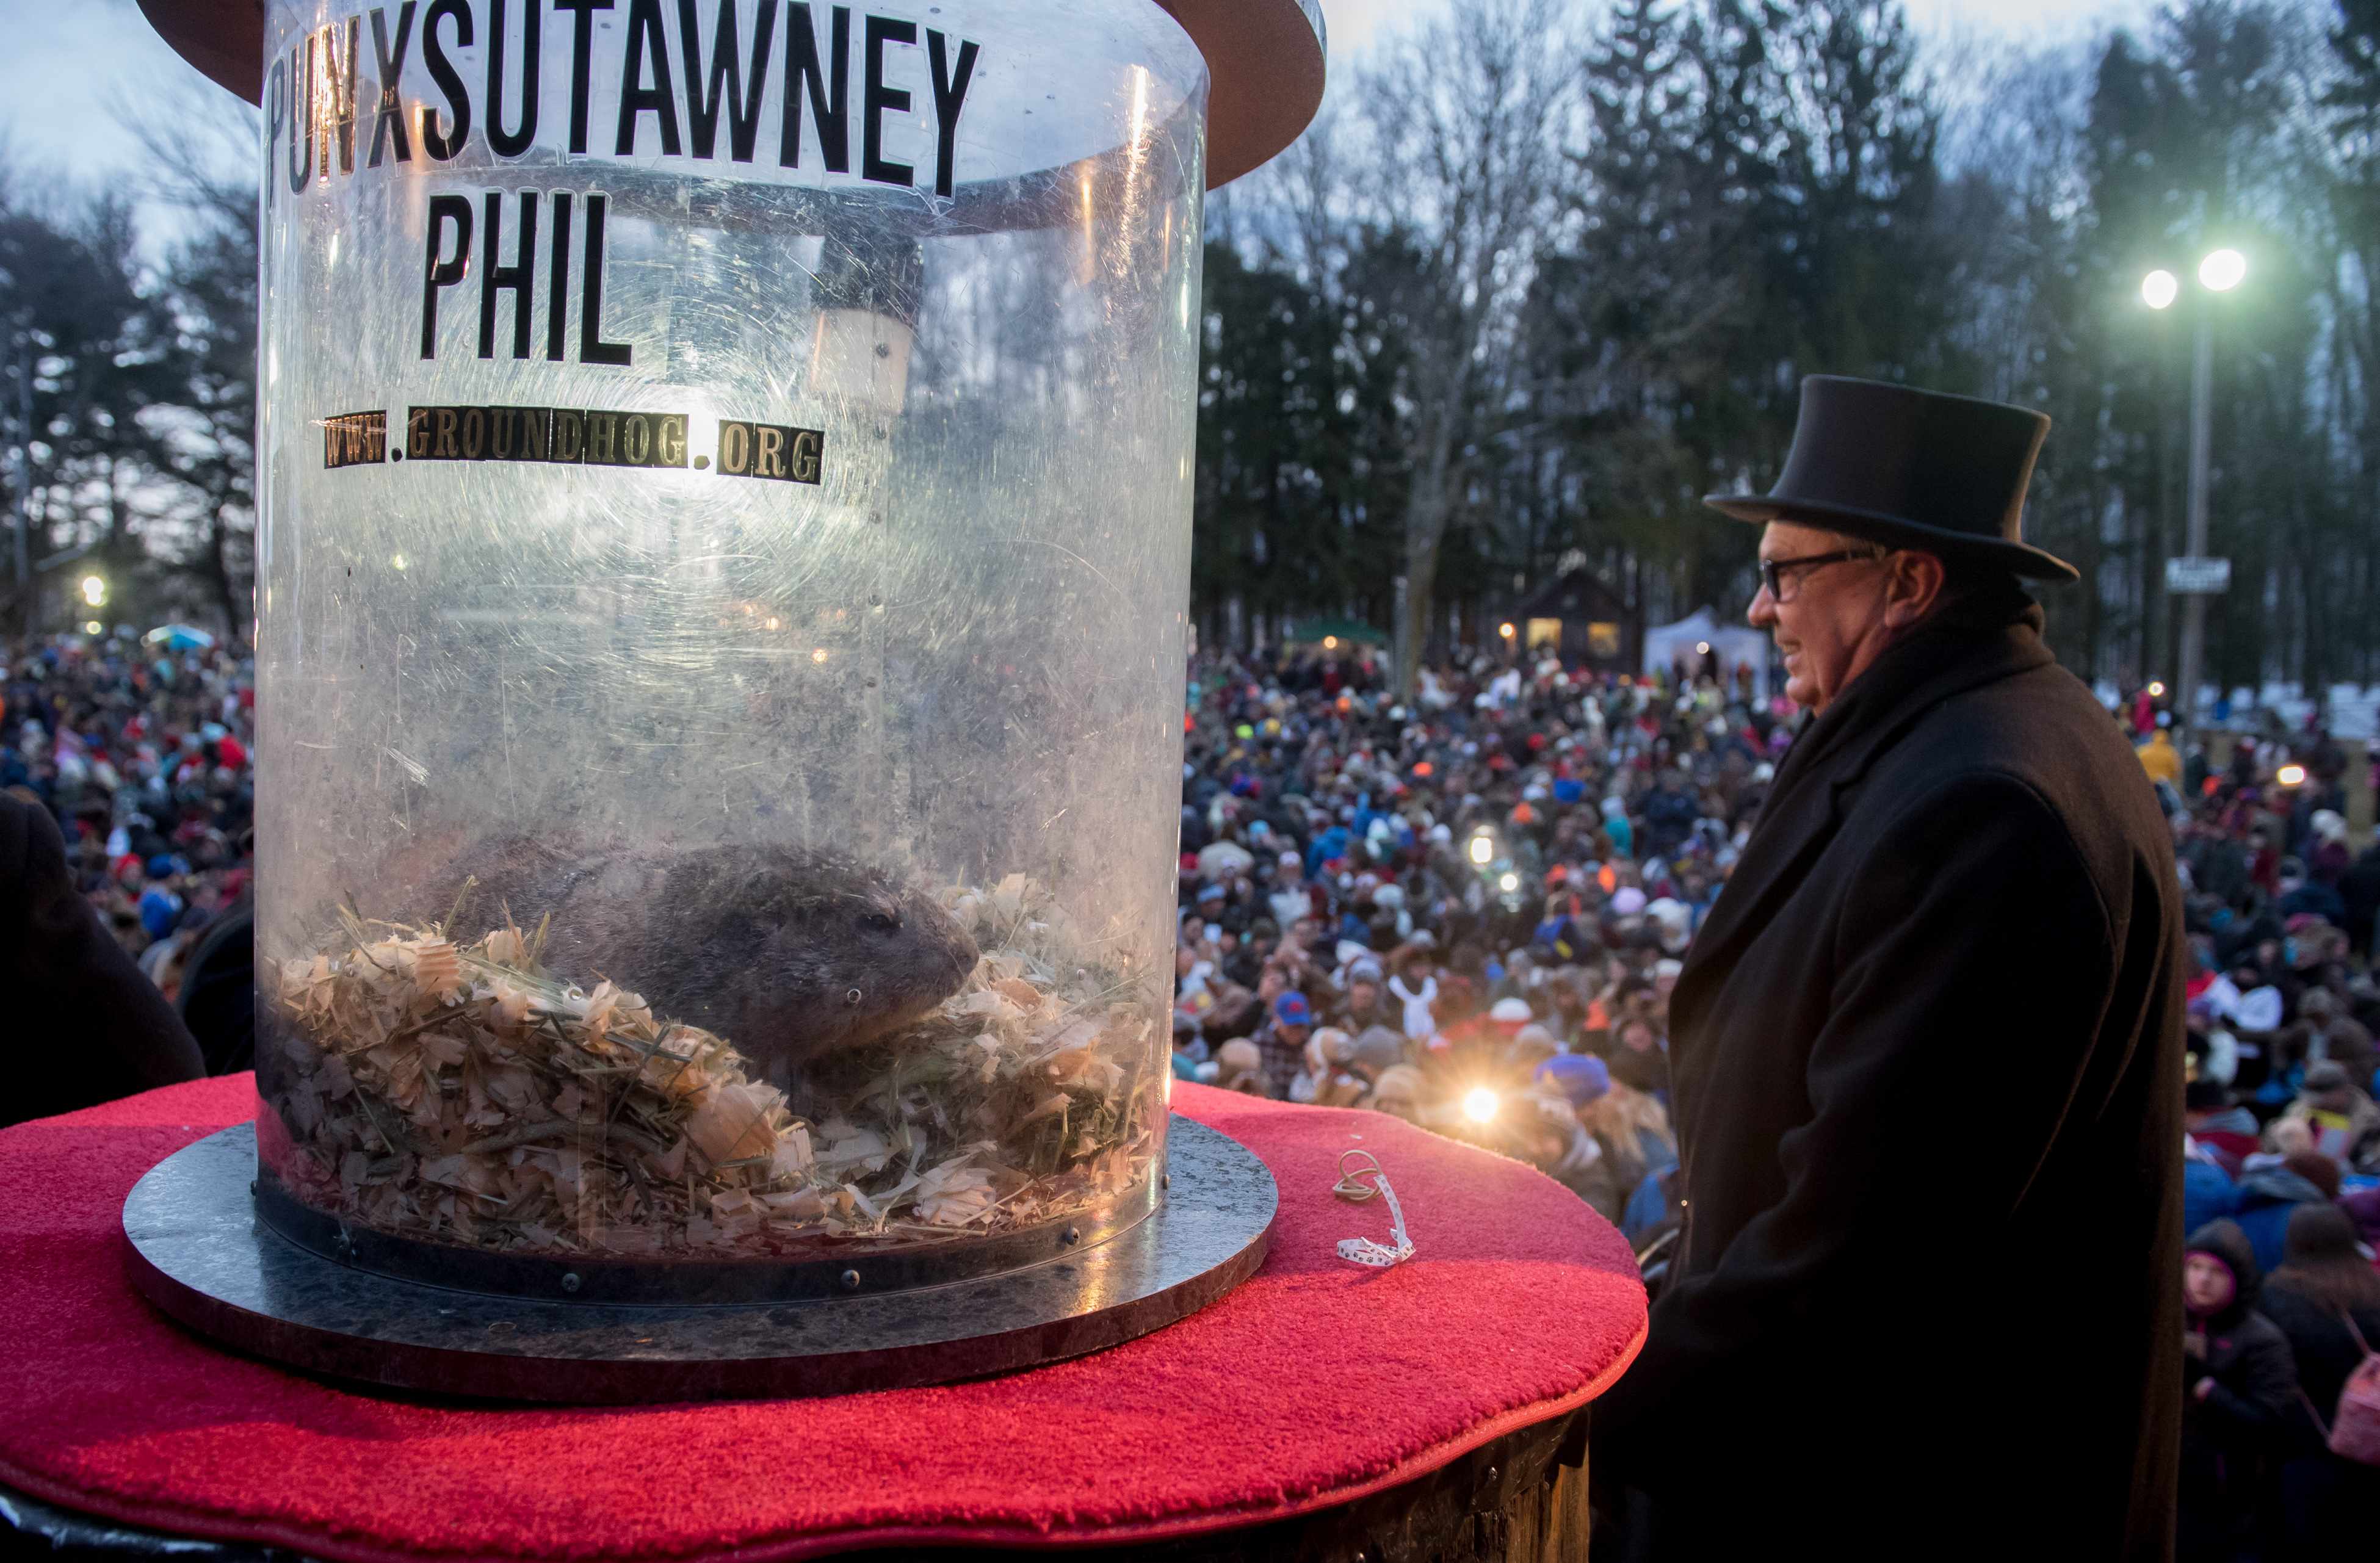 Punxsutawney Phil saw his shadow predicting six more weeks of winter during 131st annual Groundhog Day festivities on February 2, 2017 in Punxsutawney, Pennsylvania.